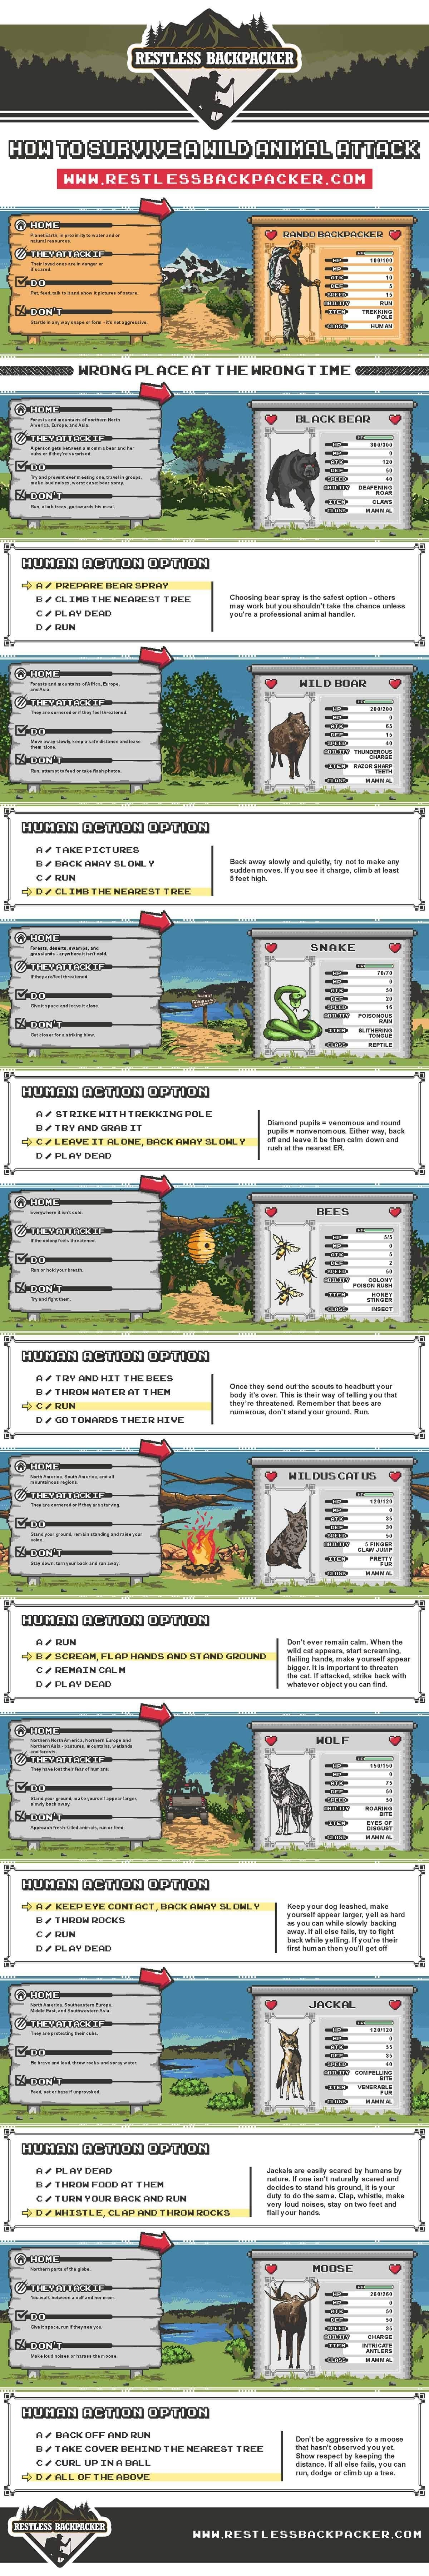 How to Survive an Animal Attack #infographic